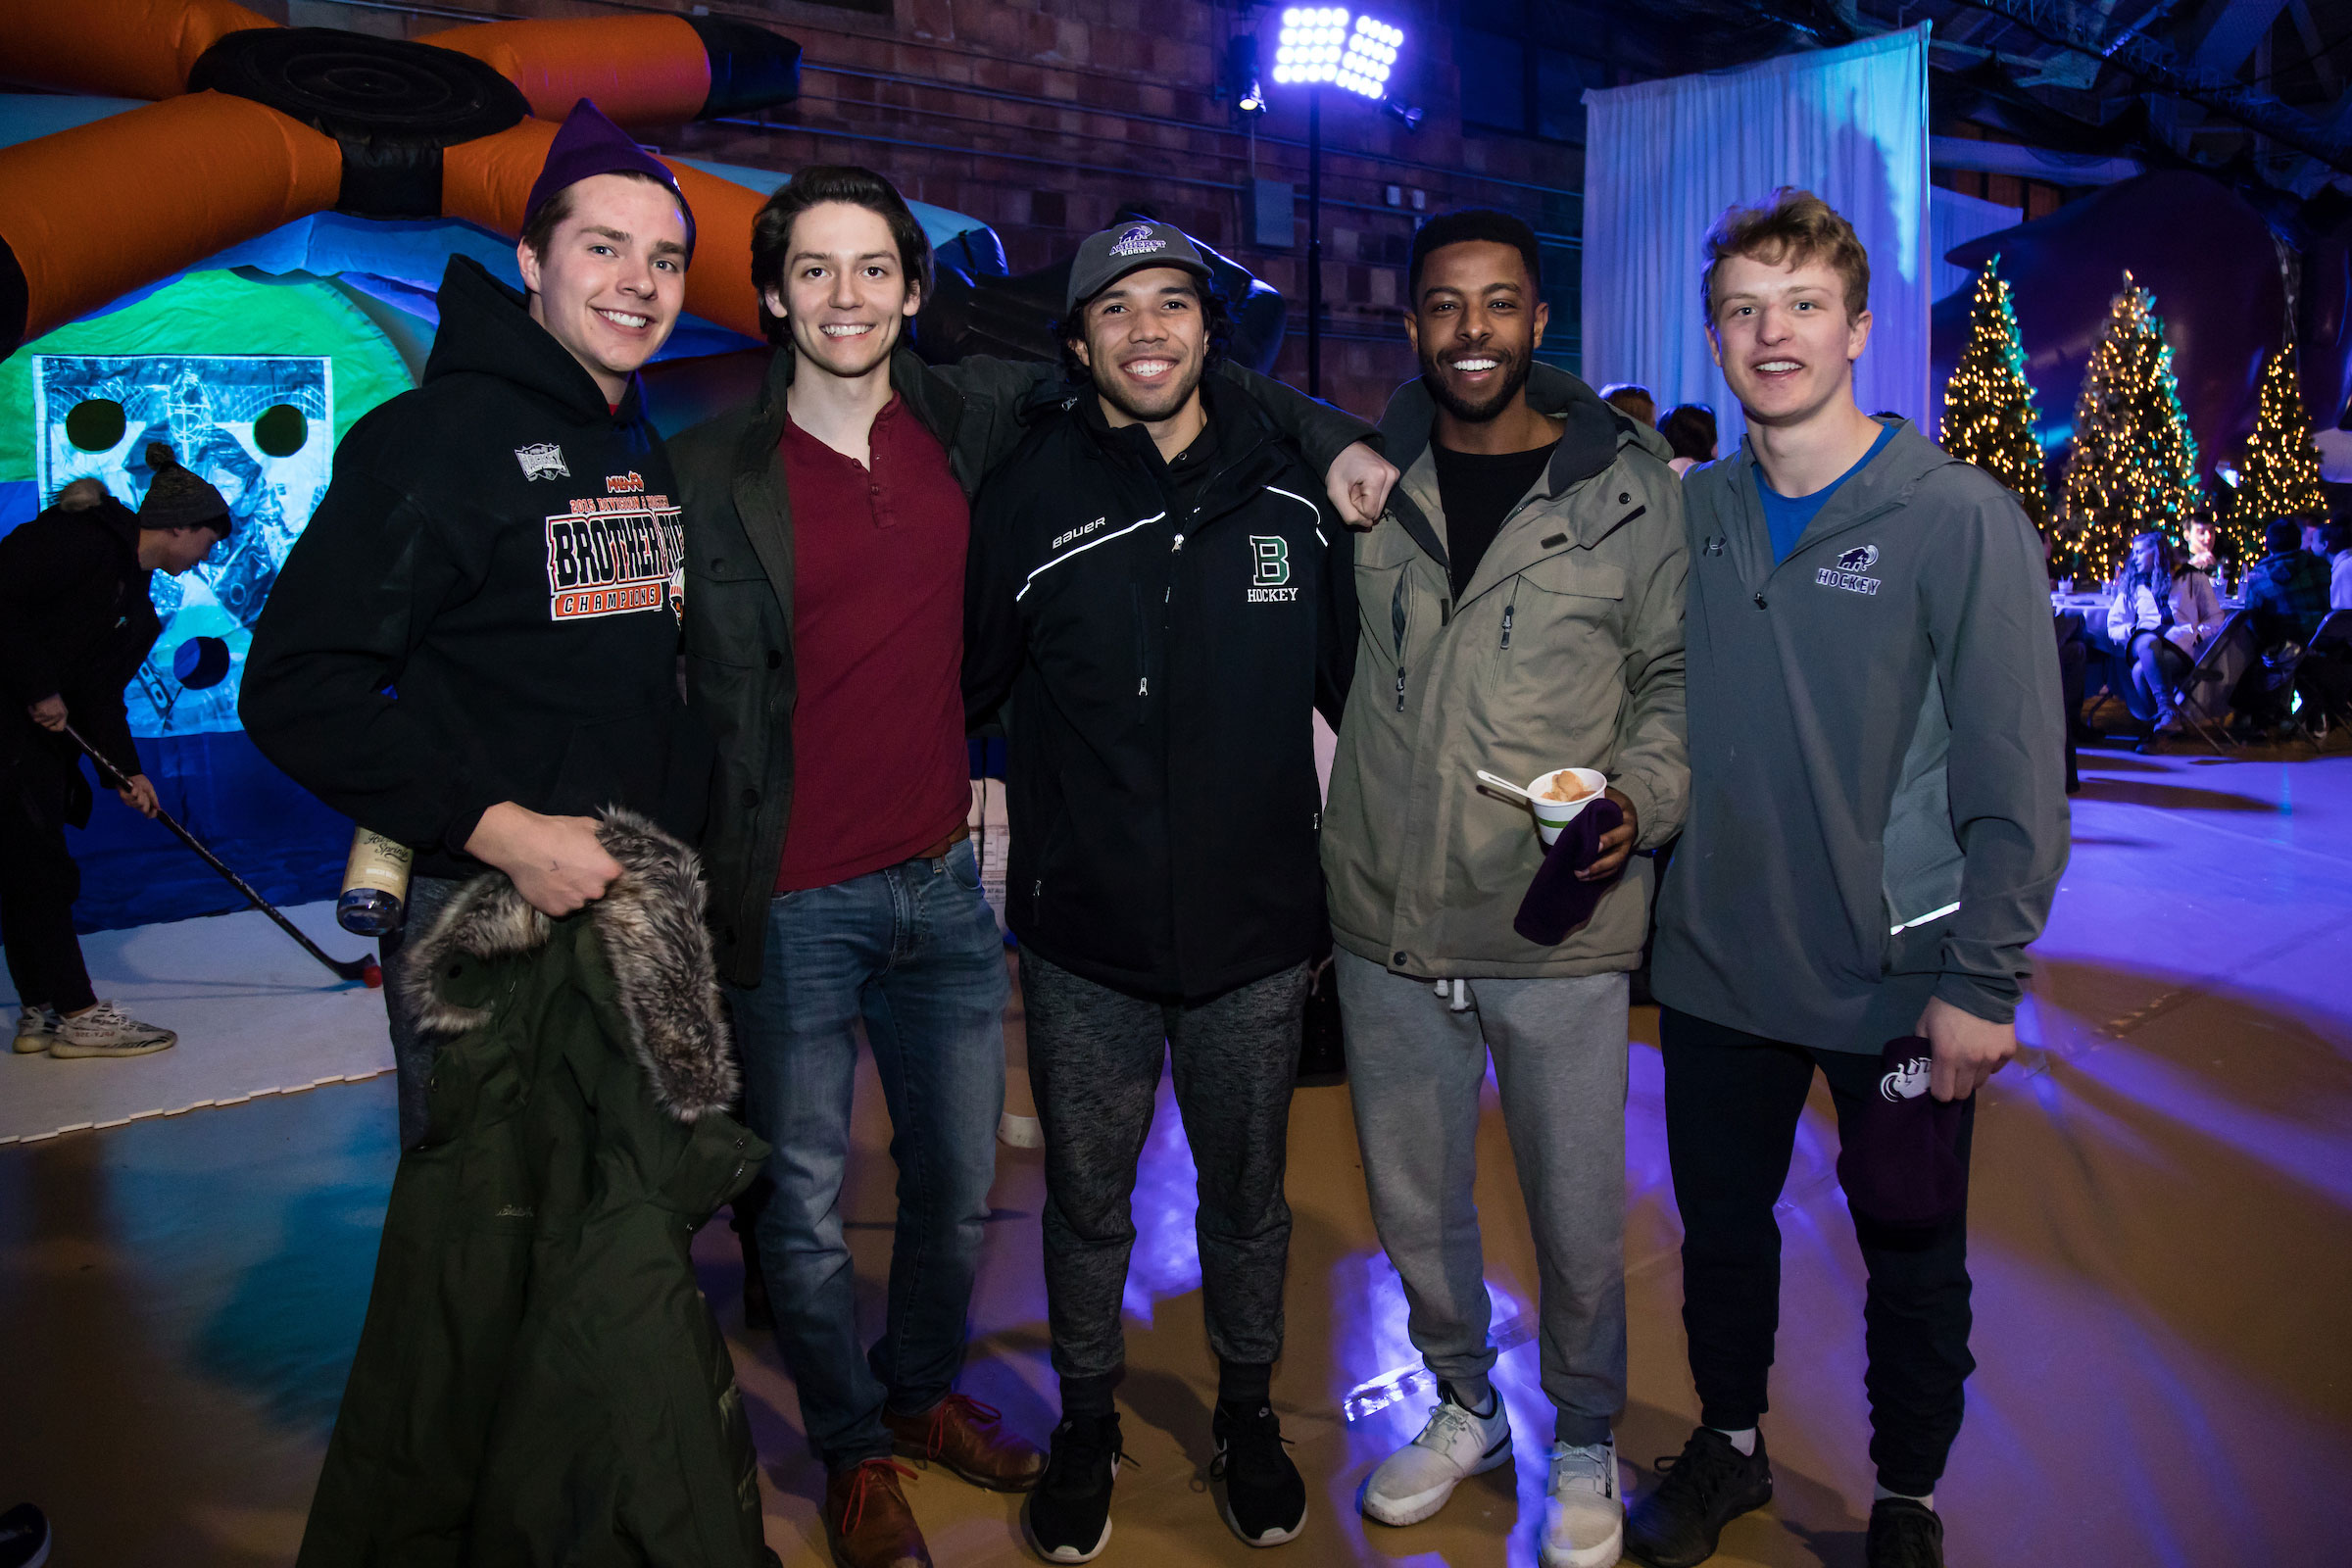 Five men smile for the camera at Winter Fest